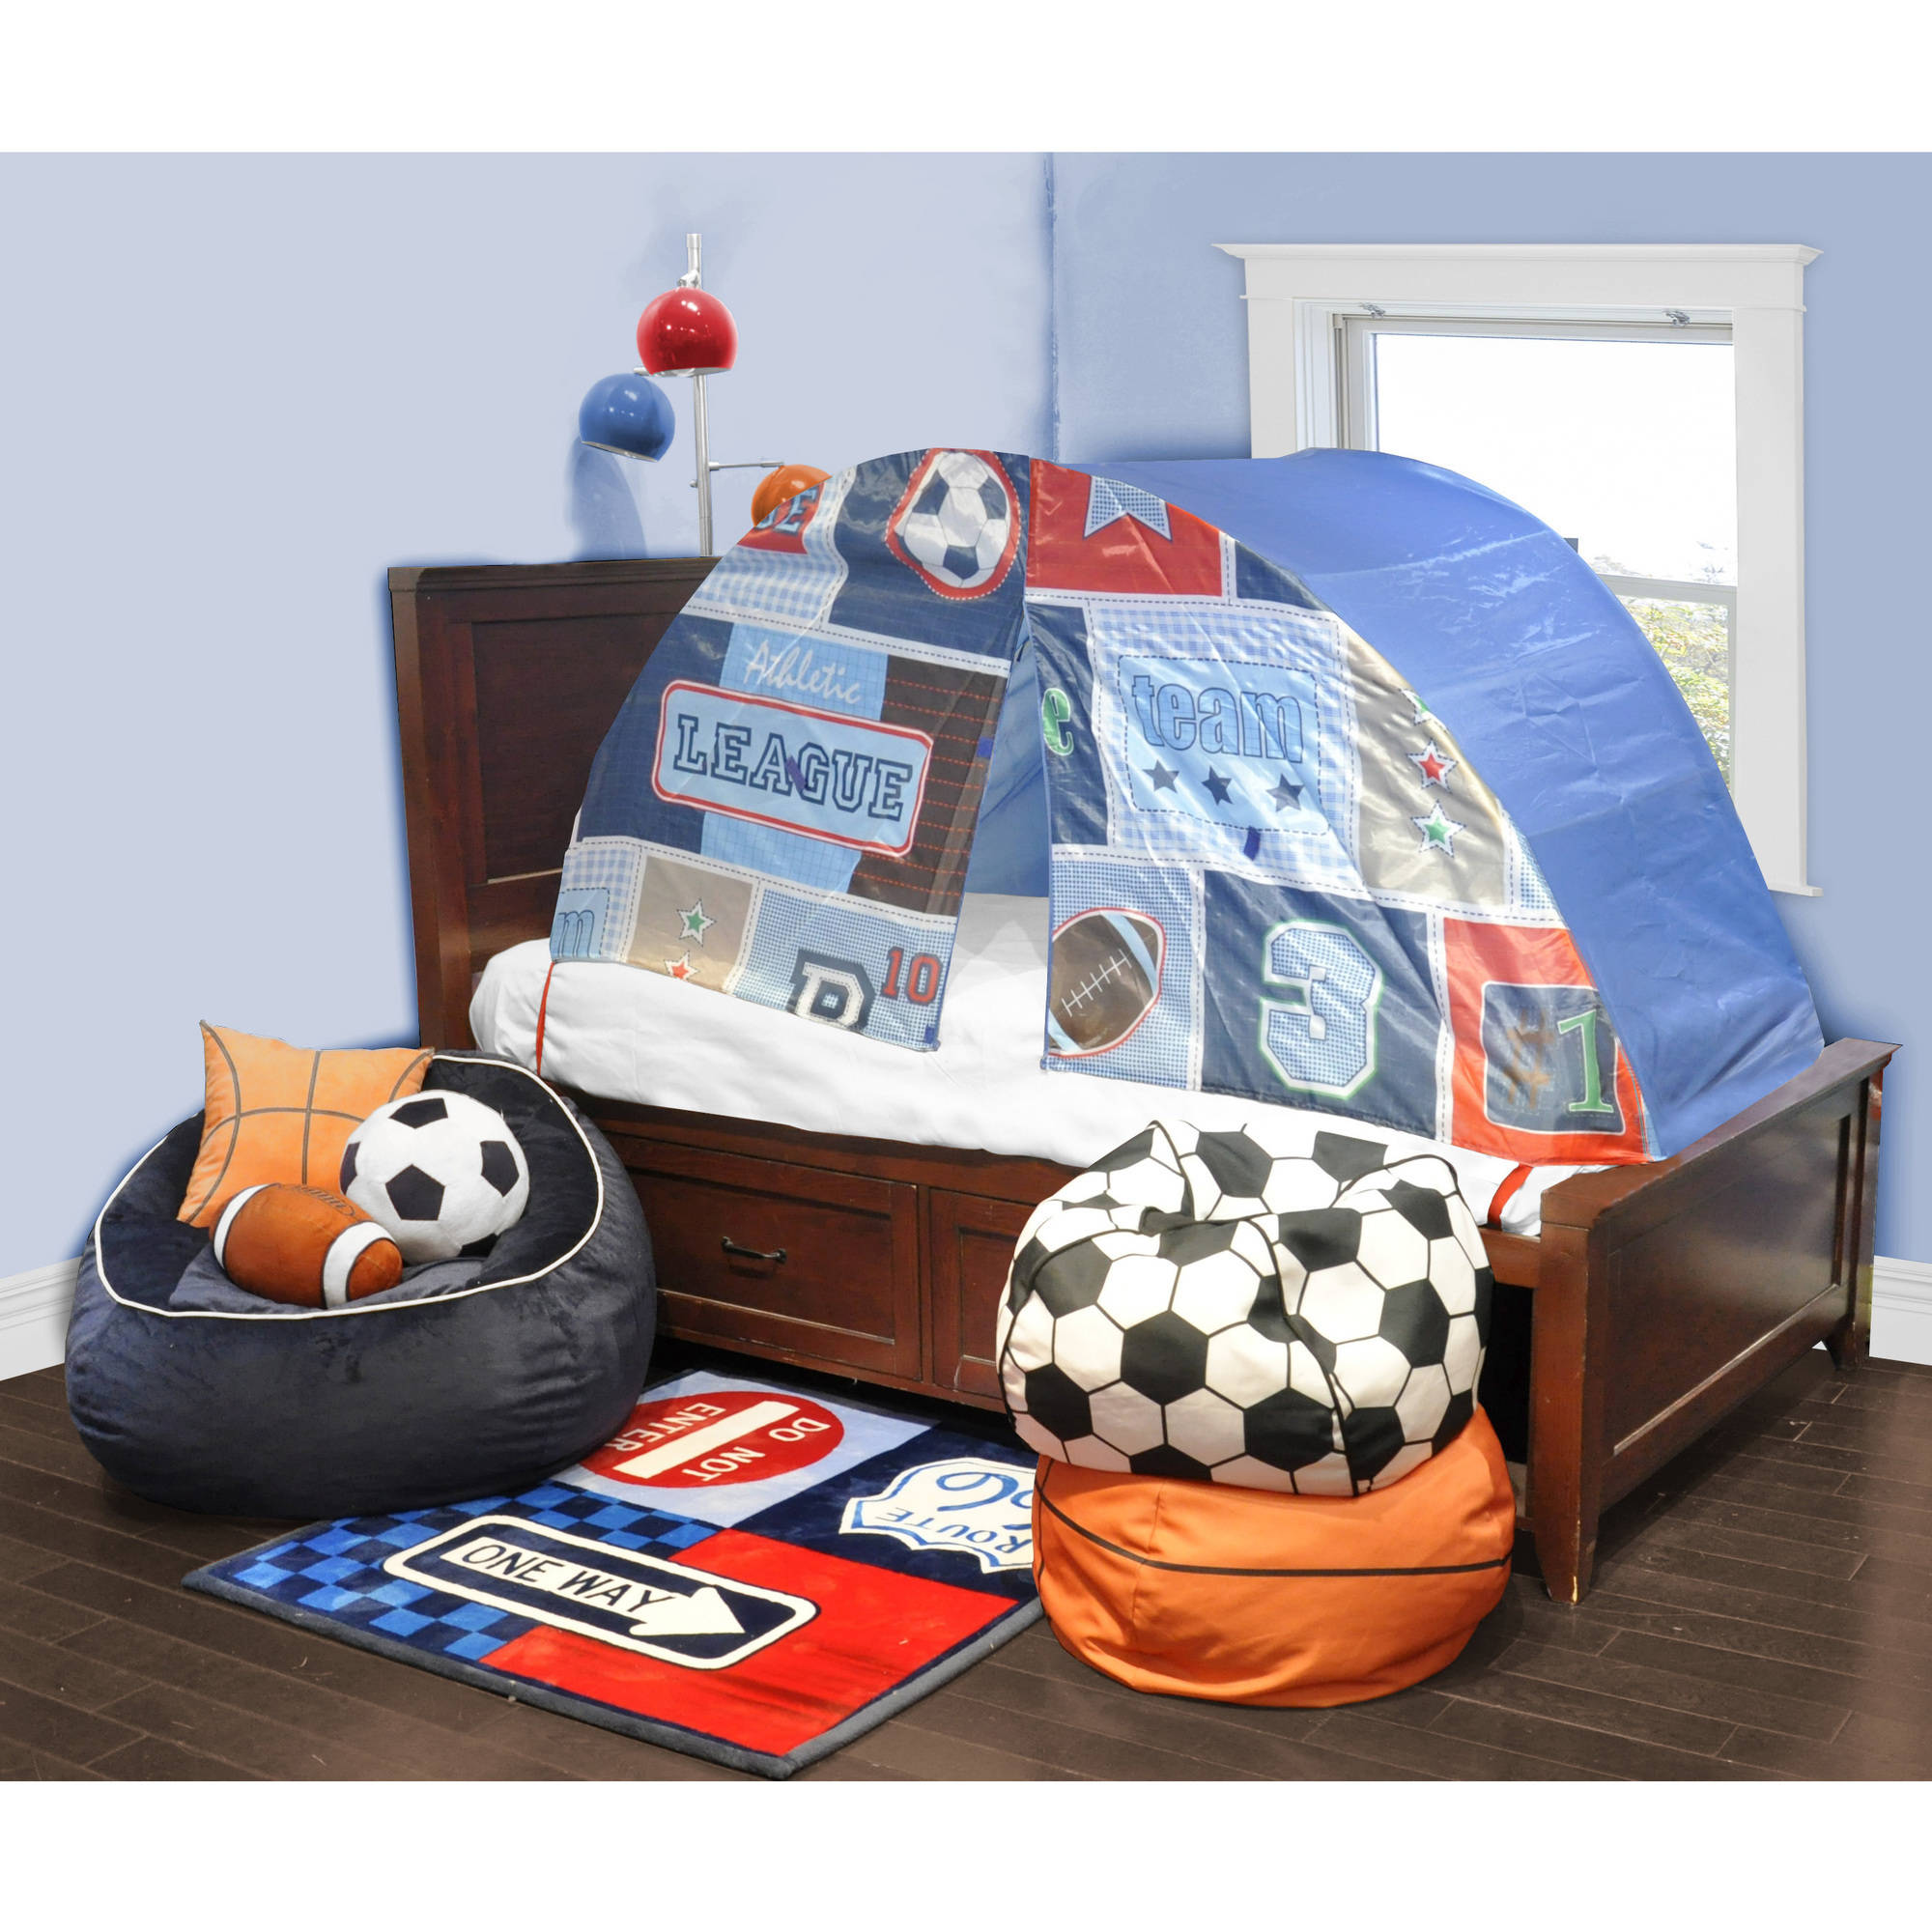 Kids Scene Sports Play Bed Tent